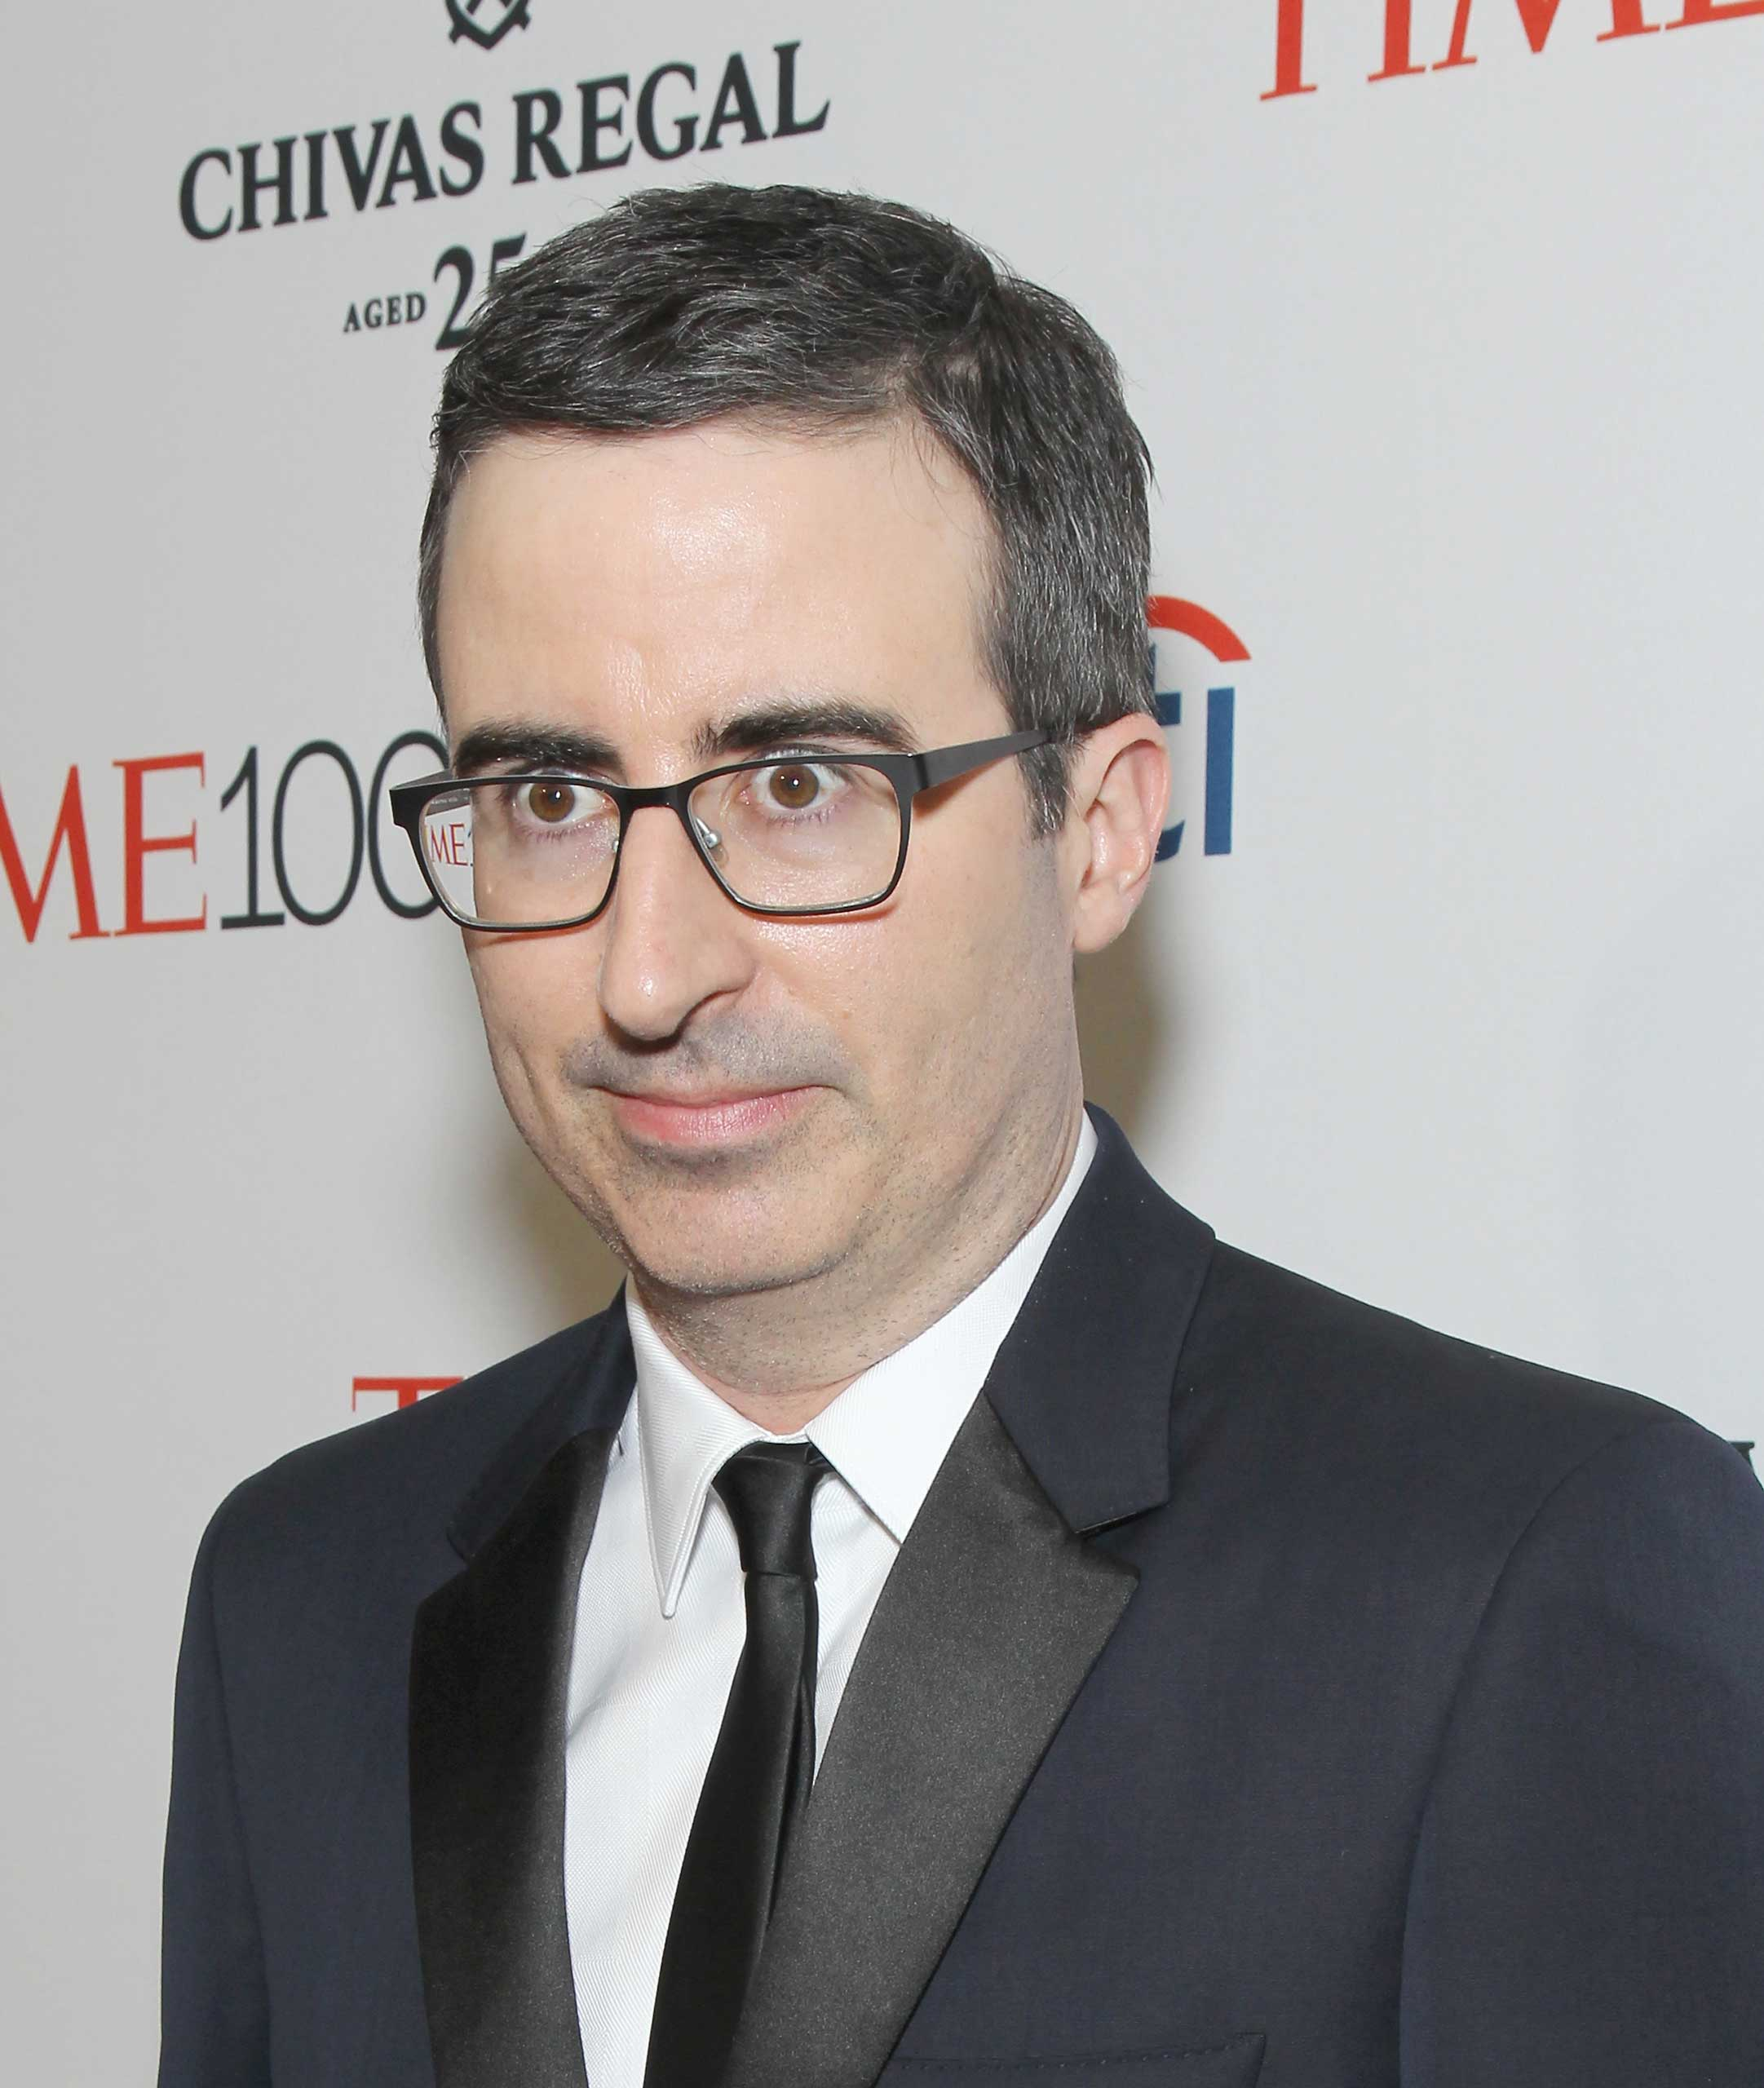 John Oliver attends the TIME 100 Gala at Jazz at Lincoln Center in New York City on Apr. 21, 2015.